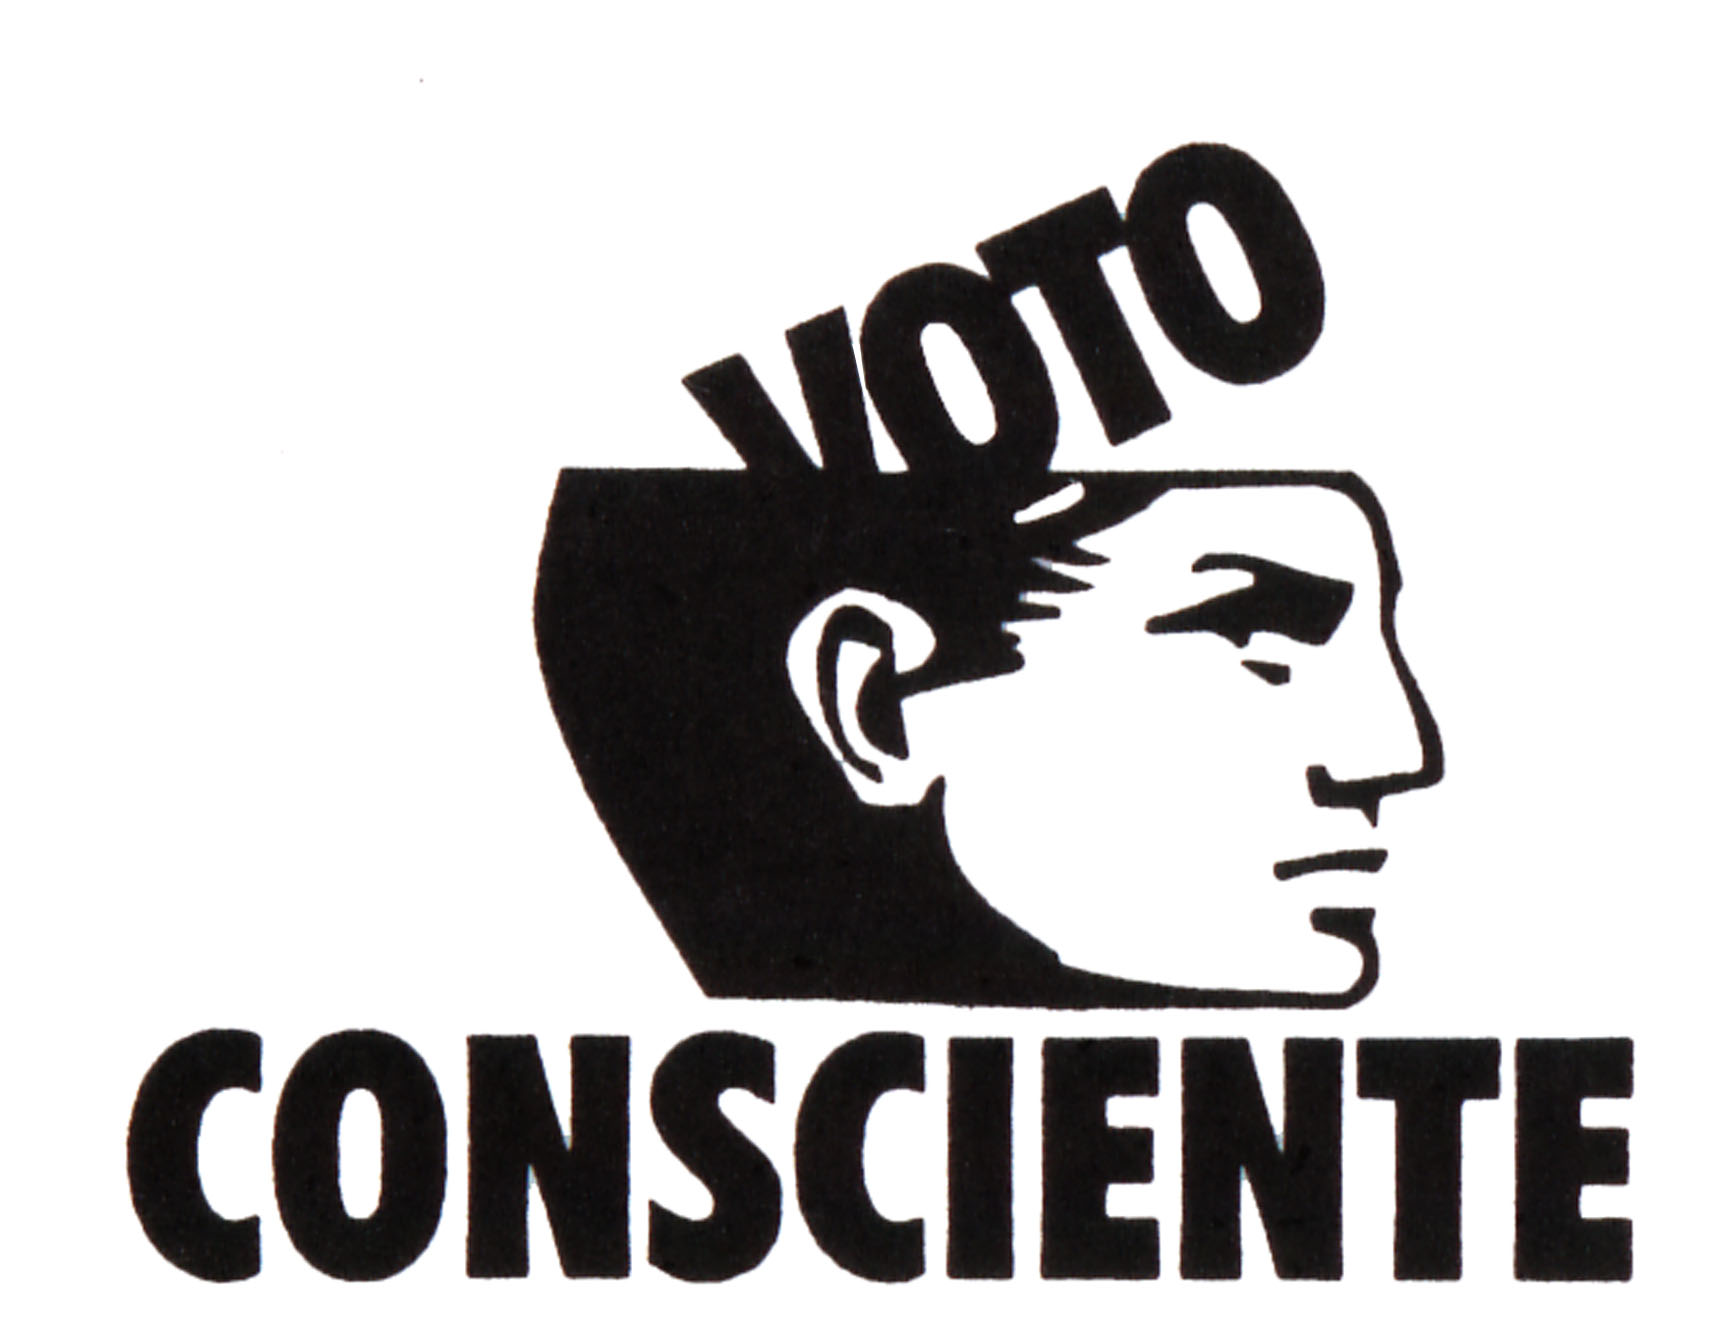 voto-consciente-eleicoes